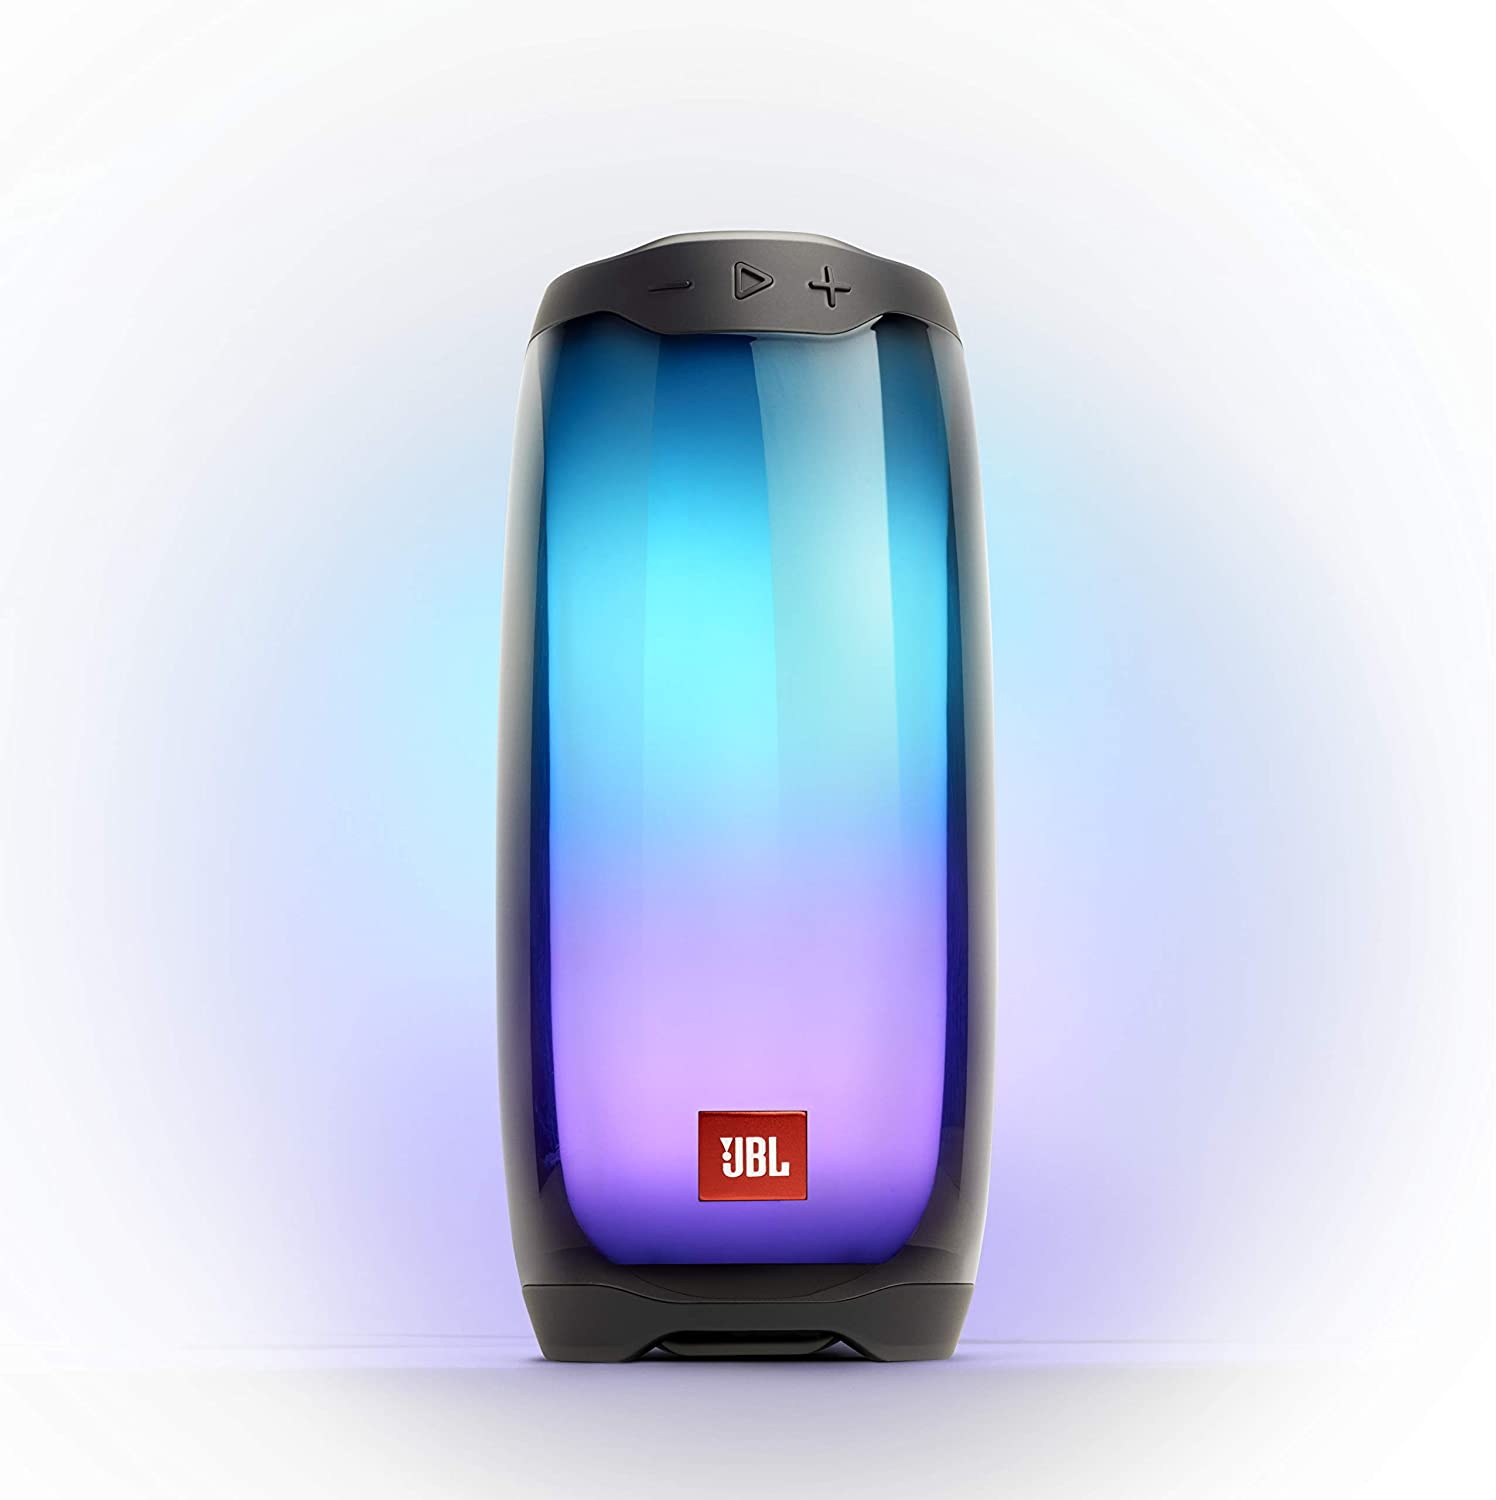 JBL Pulse 4 - Waterproof Portable Bluetooth Speaker with Light Show